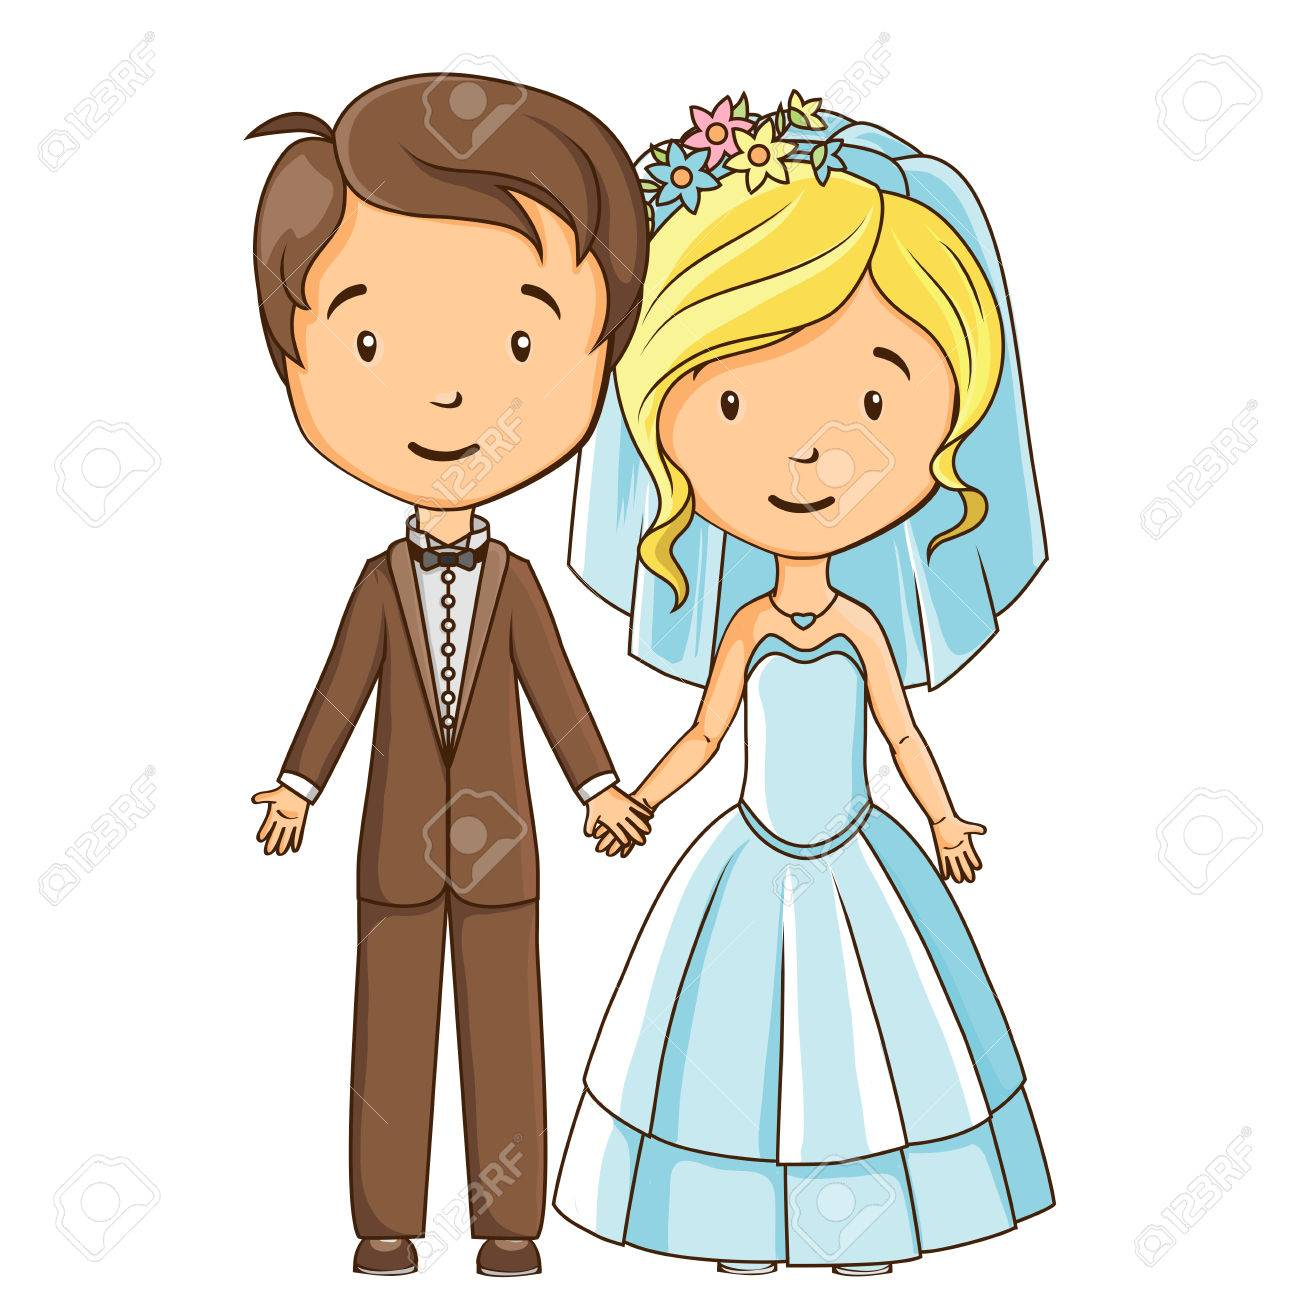 Cartoon style bride and groom holding hands.